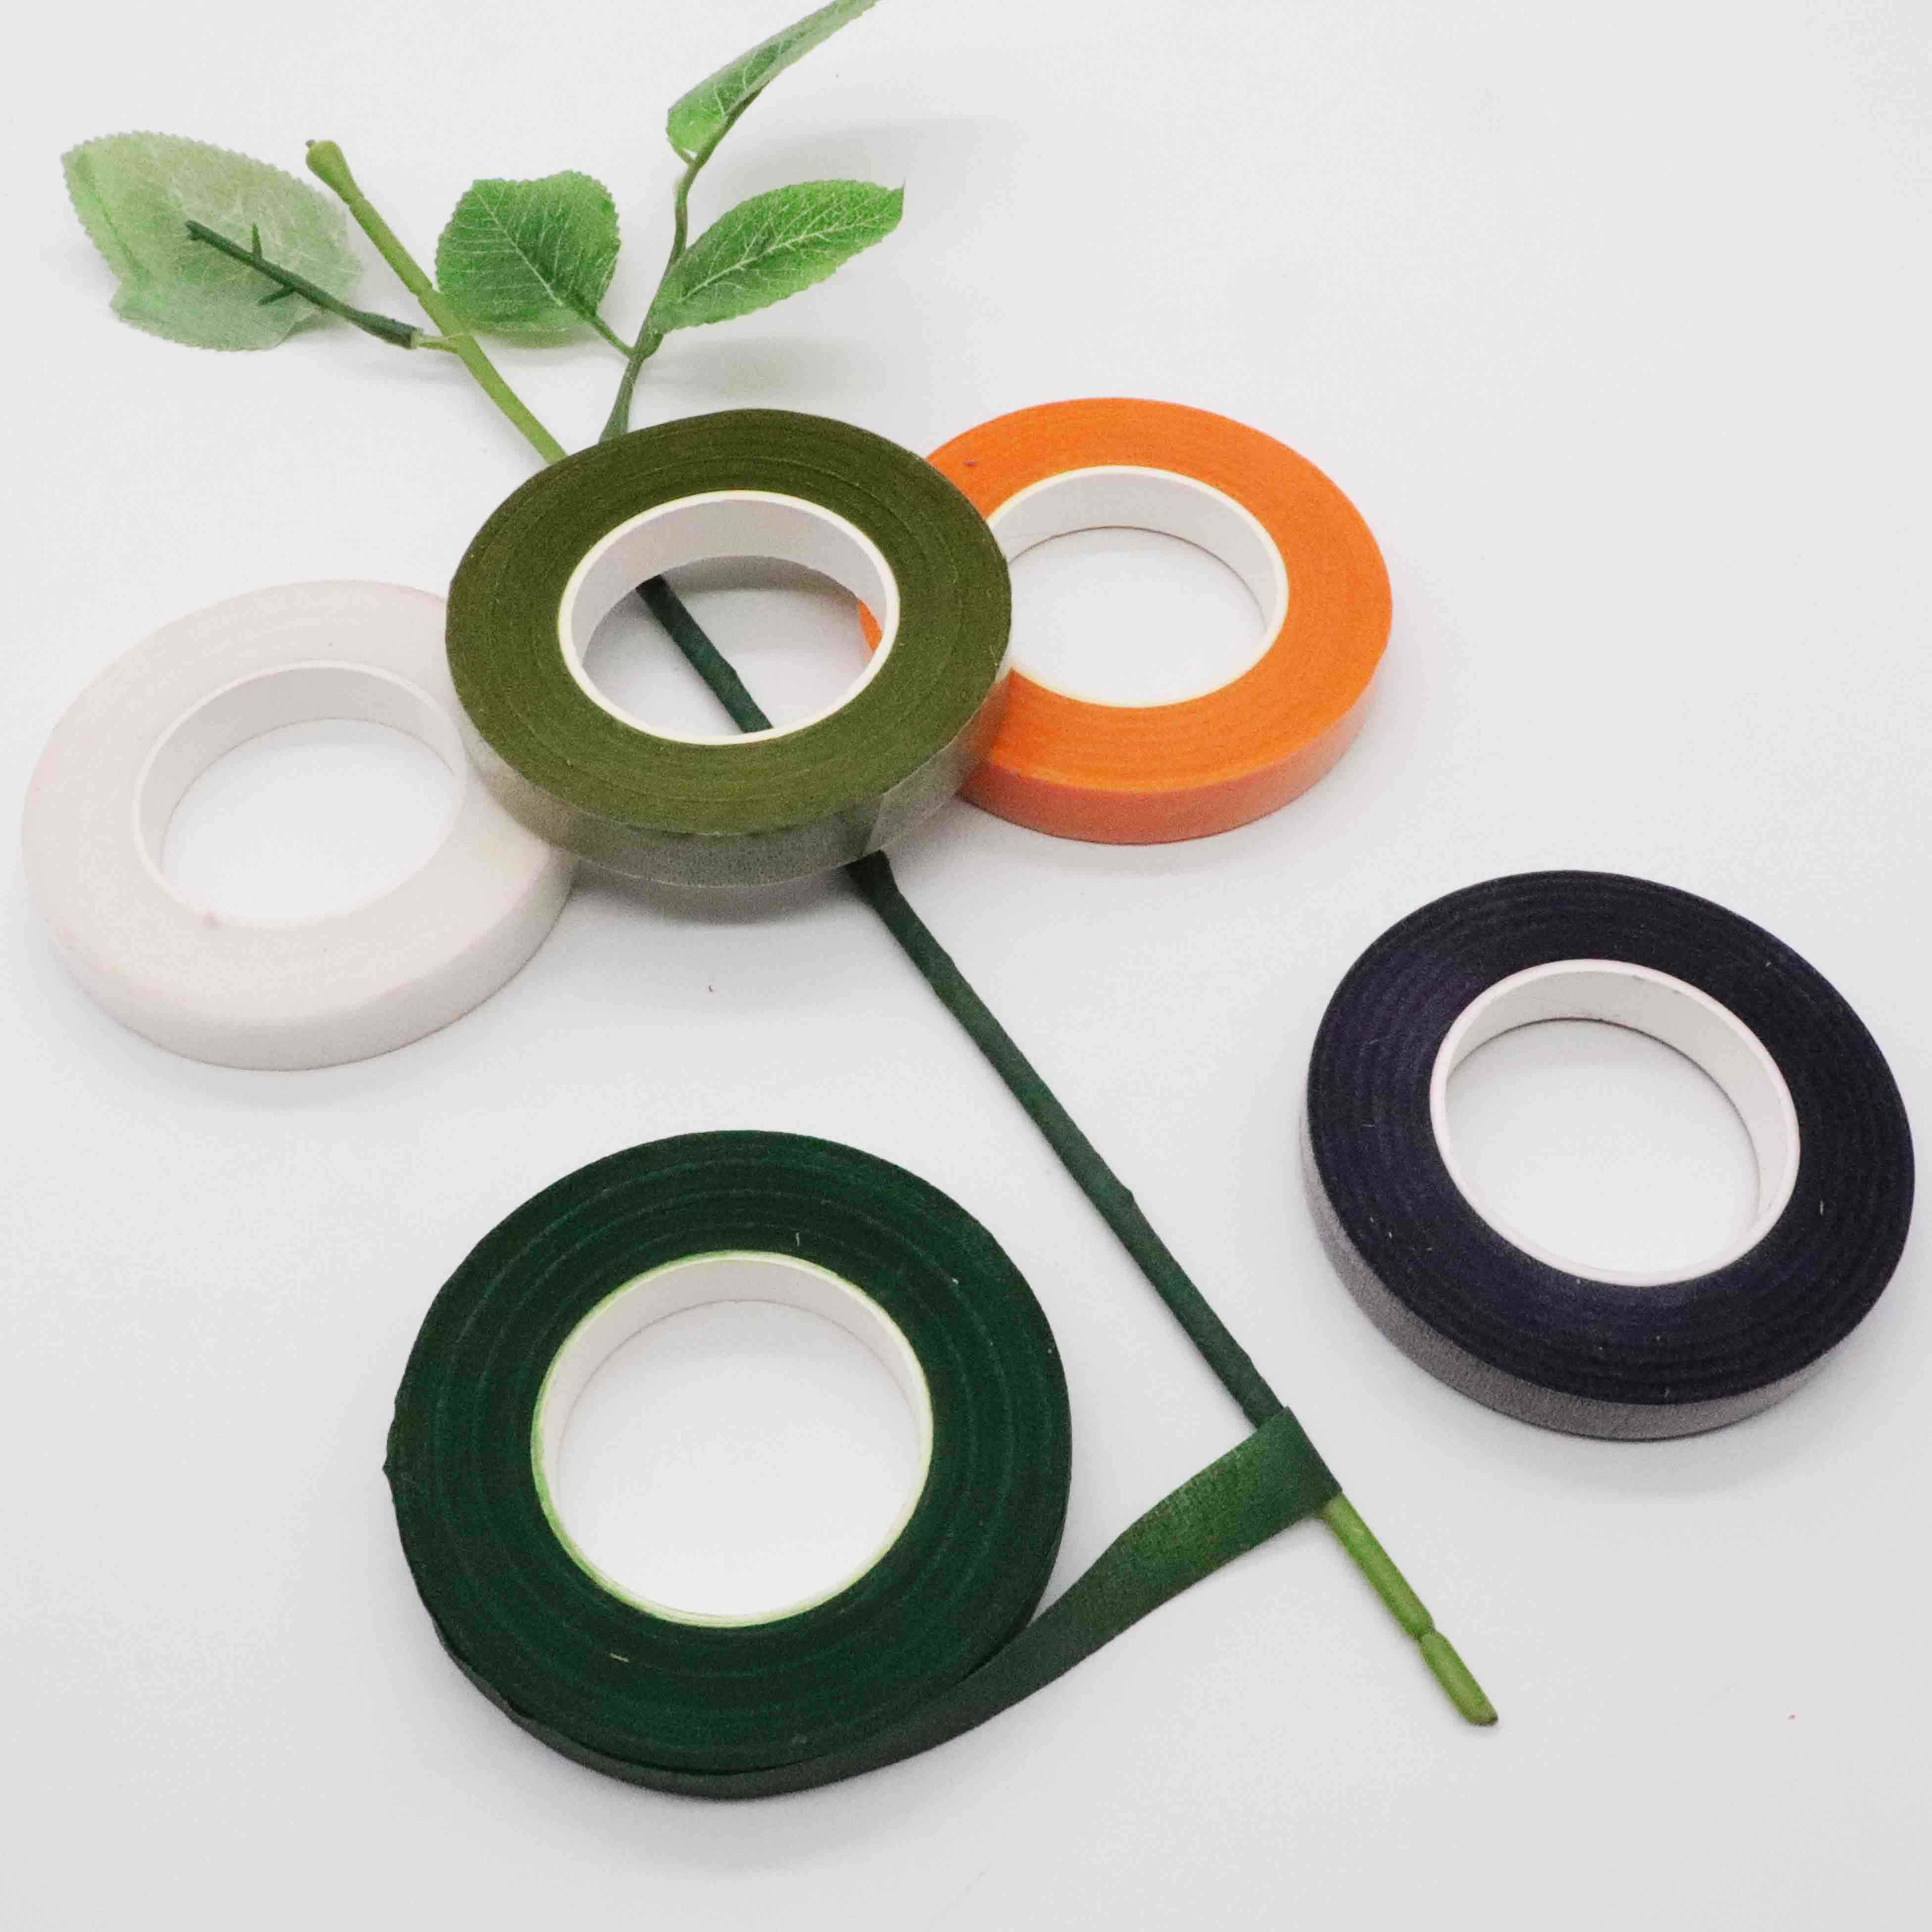 Floral Green Tapes 12mm*45m/ROLL Tape Corsages Buttonhole Artificial Flower Stamen Wrap Florist Green Tapes Stretchy Tape